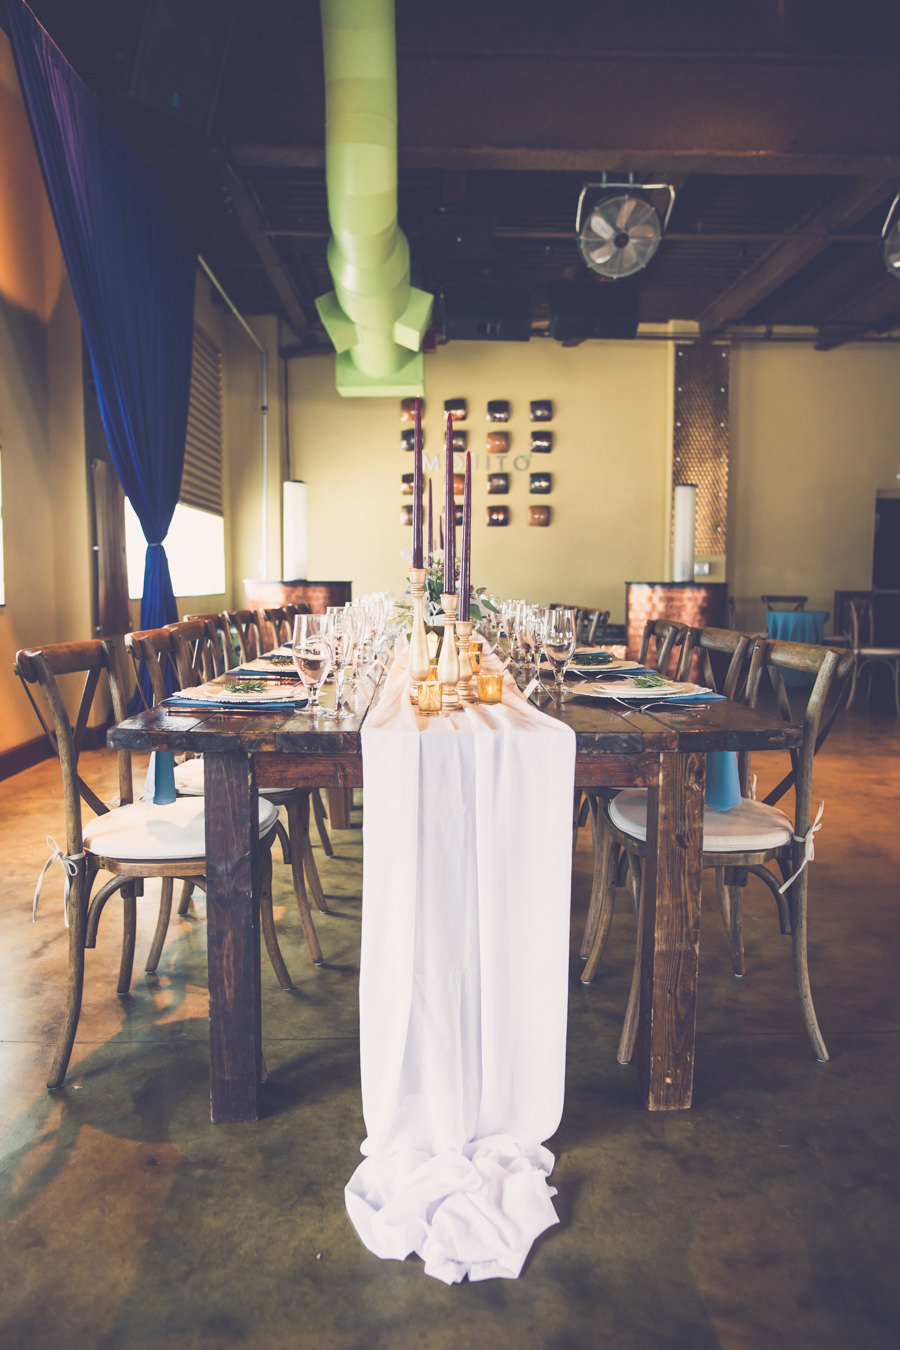 Boho Wedding Reception with Wooden Table, Wood X Back Chairs, Tall Burgundy Candles, Gold Accents, and Navy Blue Drapery | Tampa Bay Hotel Wedding Reception Venue Crowne Plaza Tampa | Tampa Farm Table Rentals A Chair Affair